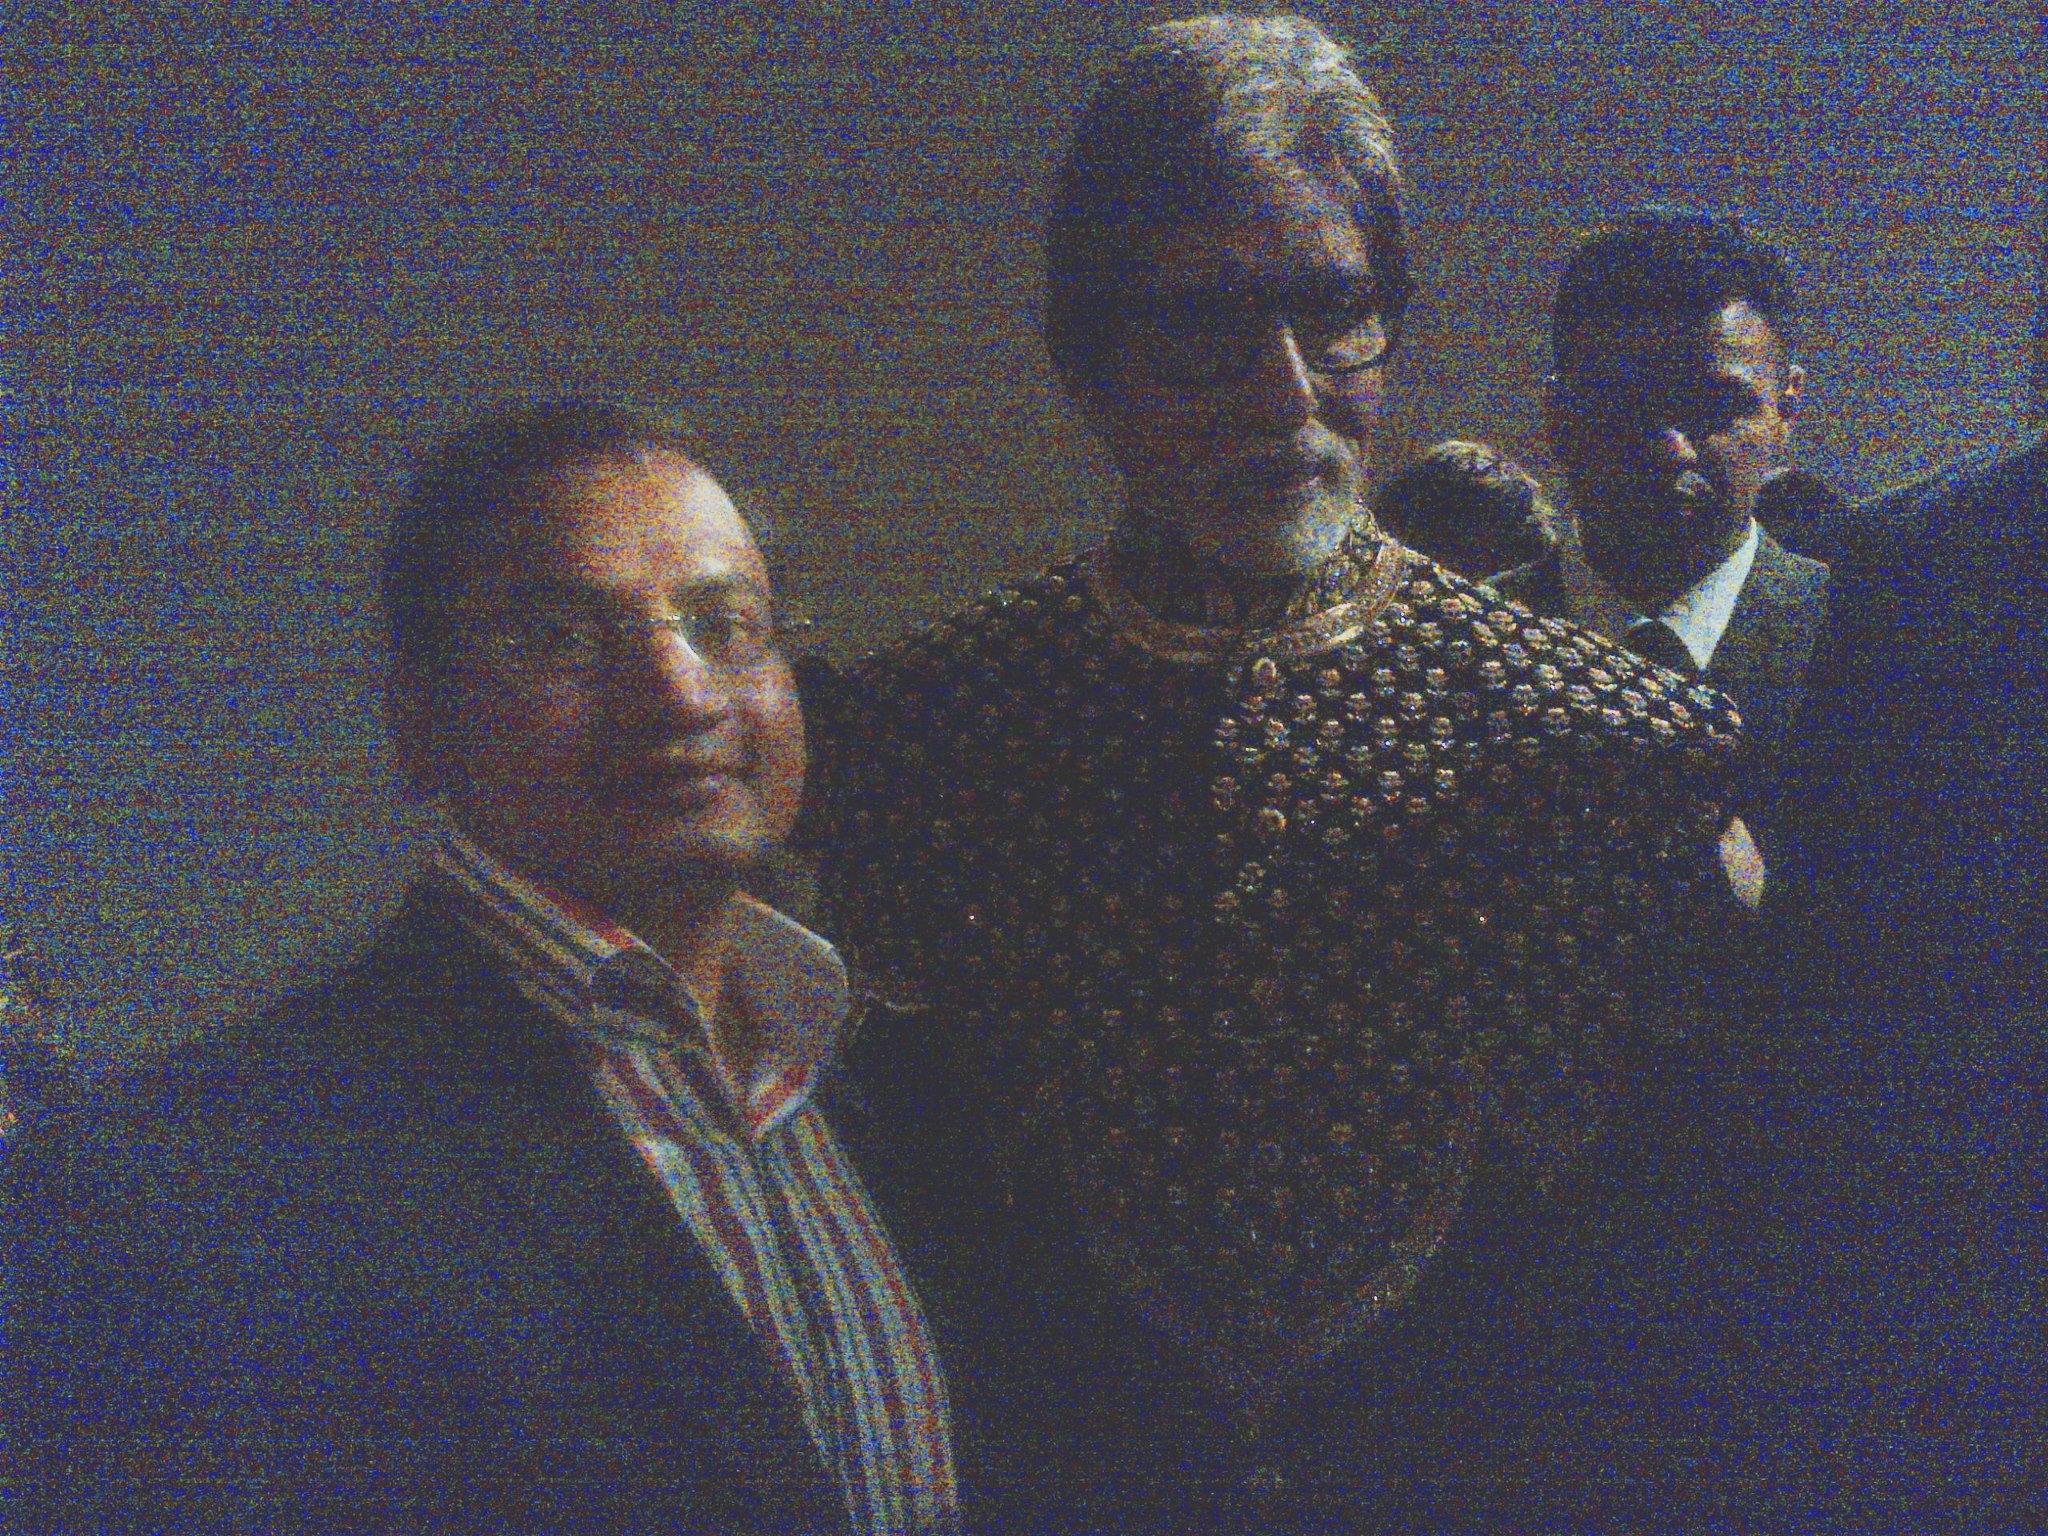 With Amitabh Bachchan